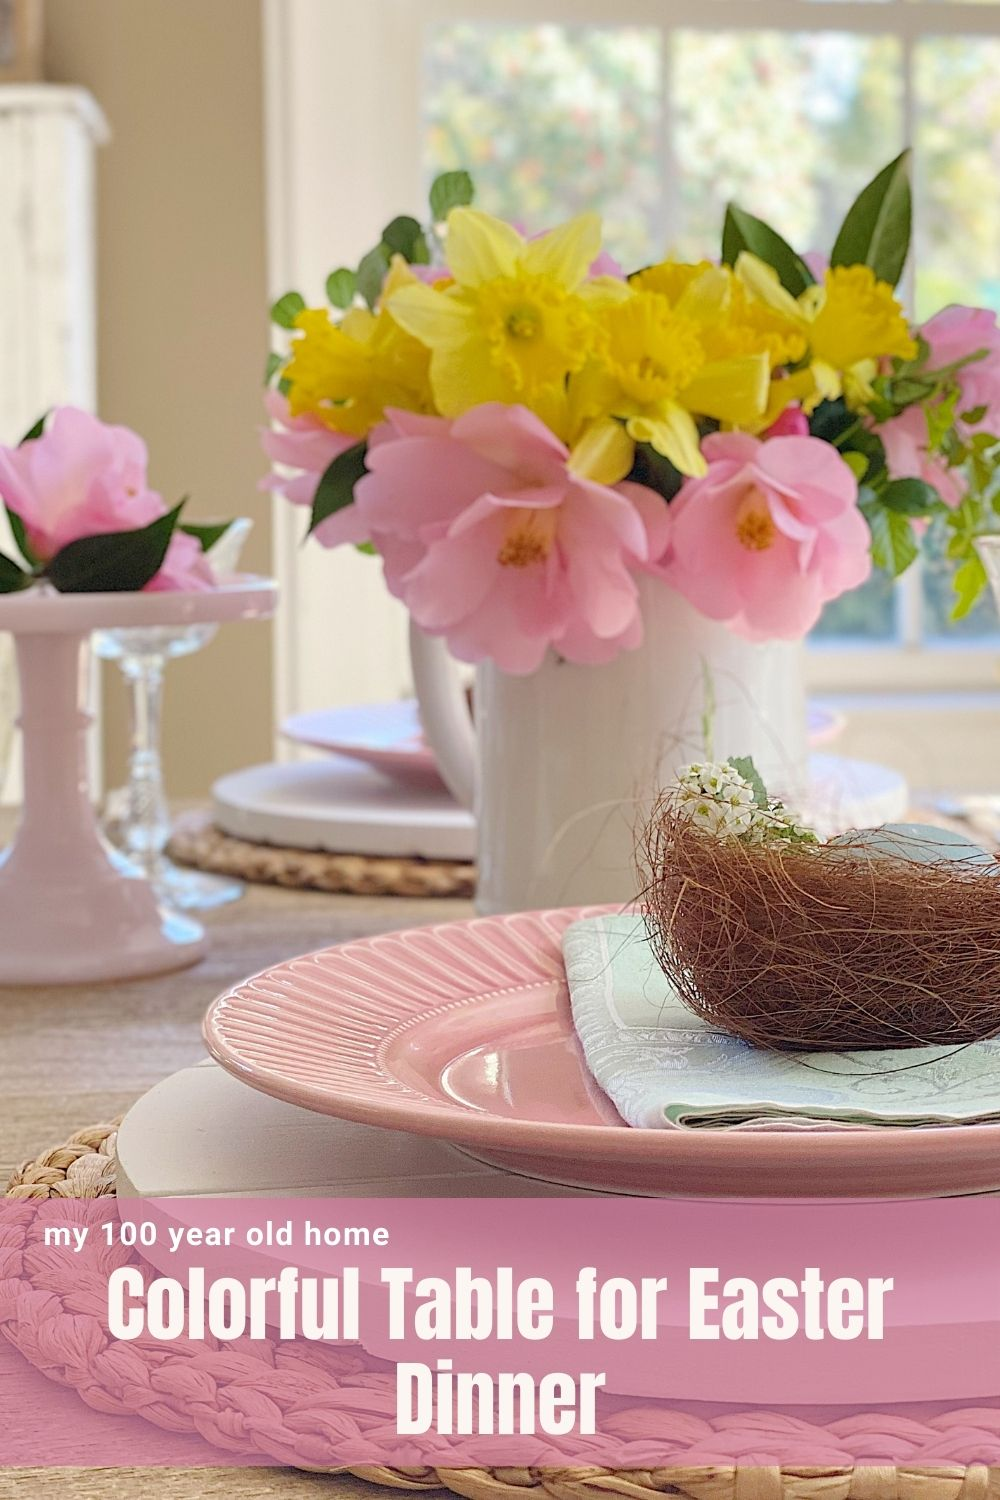 Today I am sharing a very colorful table for Easter dinner. It is easy, simple, and really fun to create.